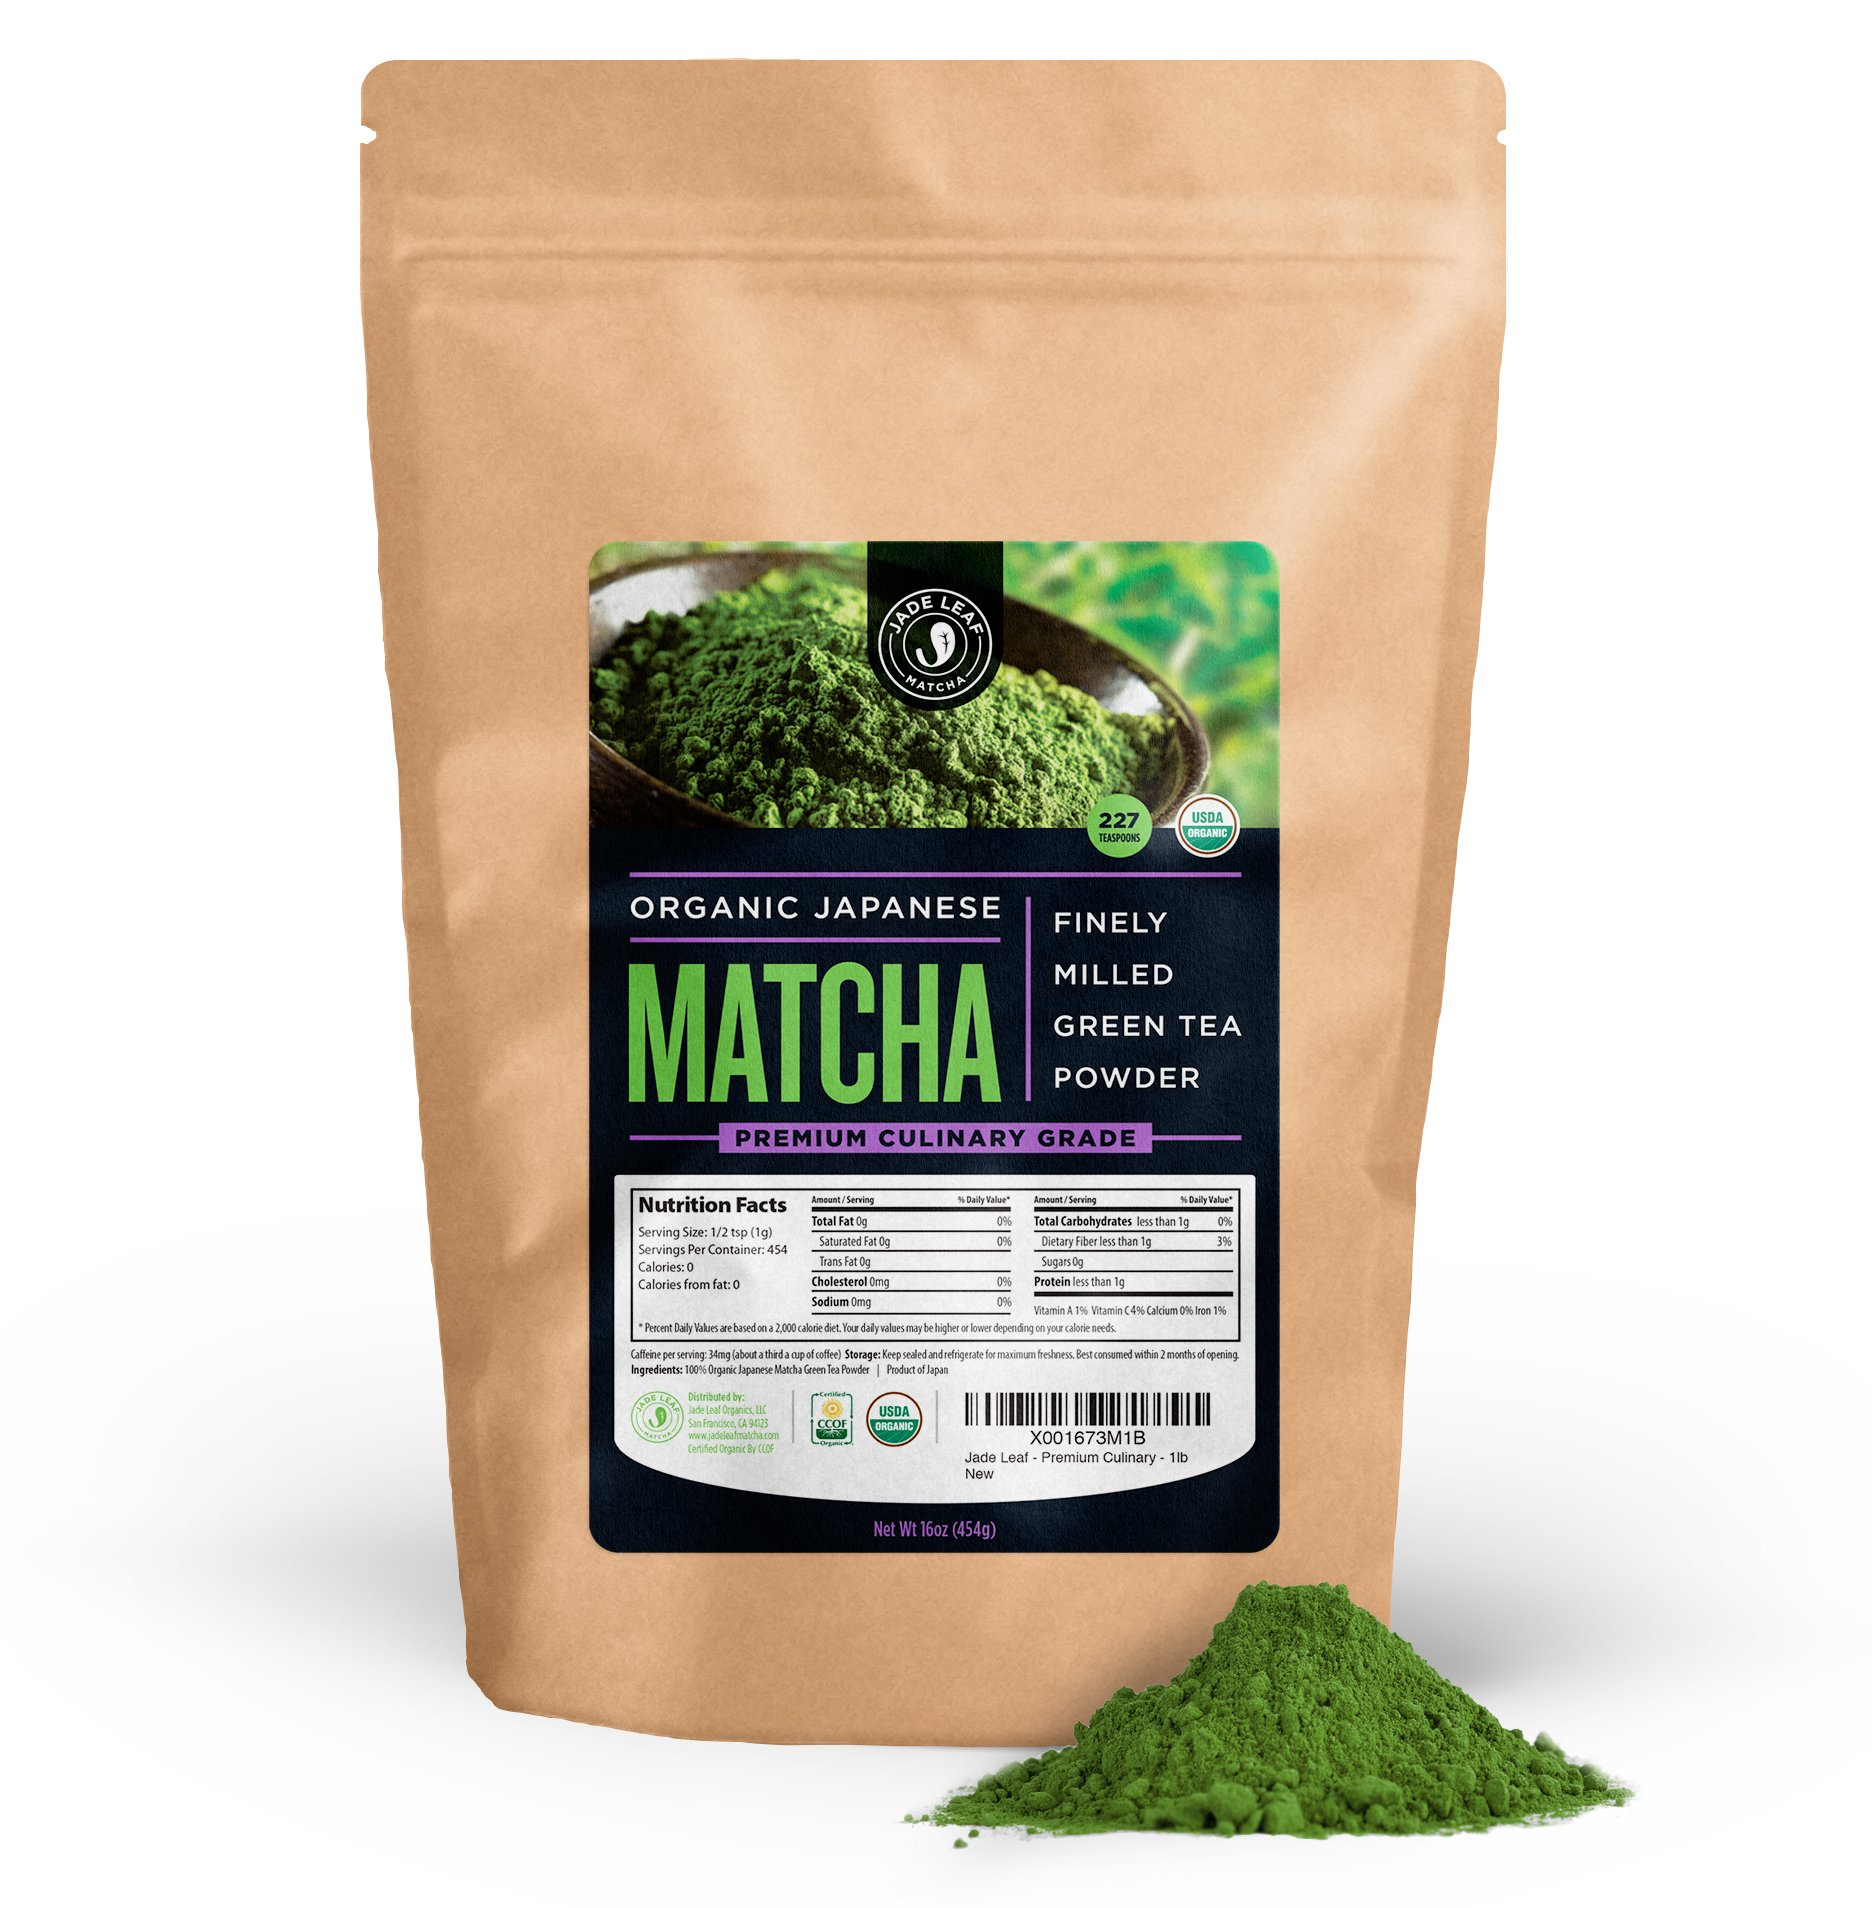 Jade Leaf - Organic Japanese Matcha Green Tea Powder, Premium Culinary Grade (Preferred By Chefs and Cafes for Blending & Baking) - [1lb Bulk Size]